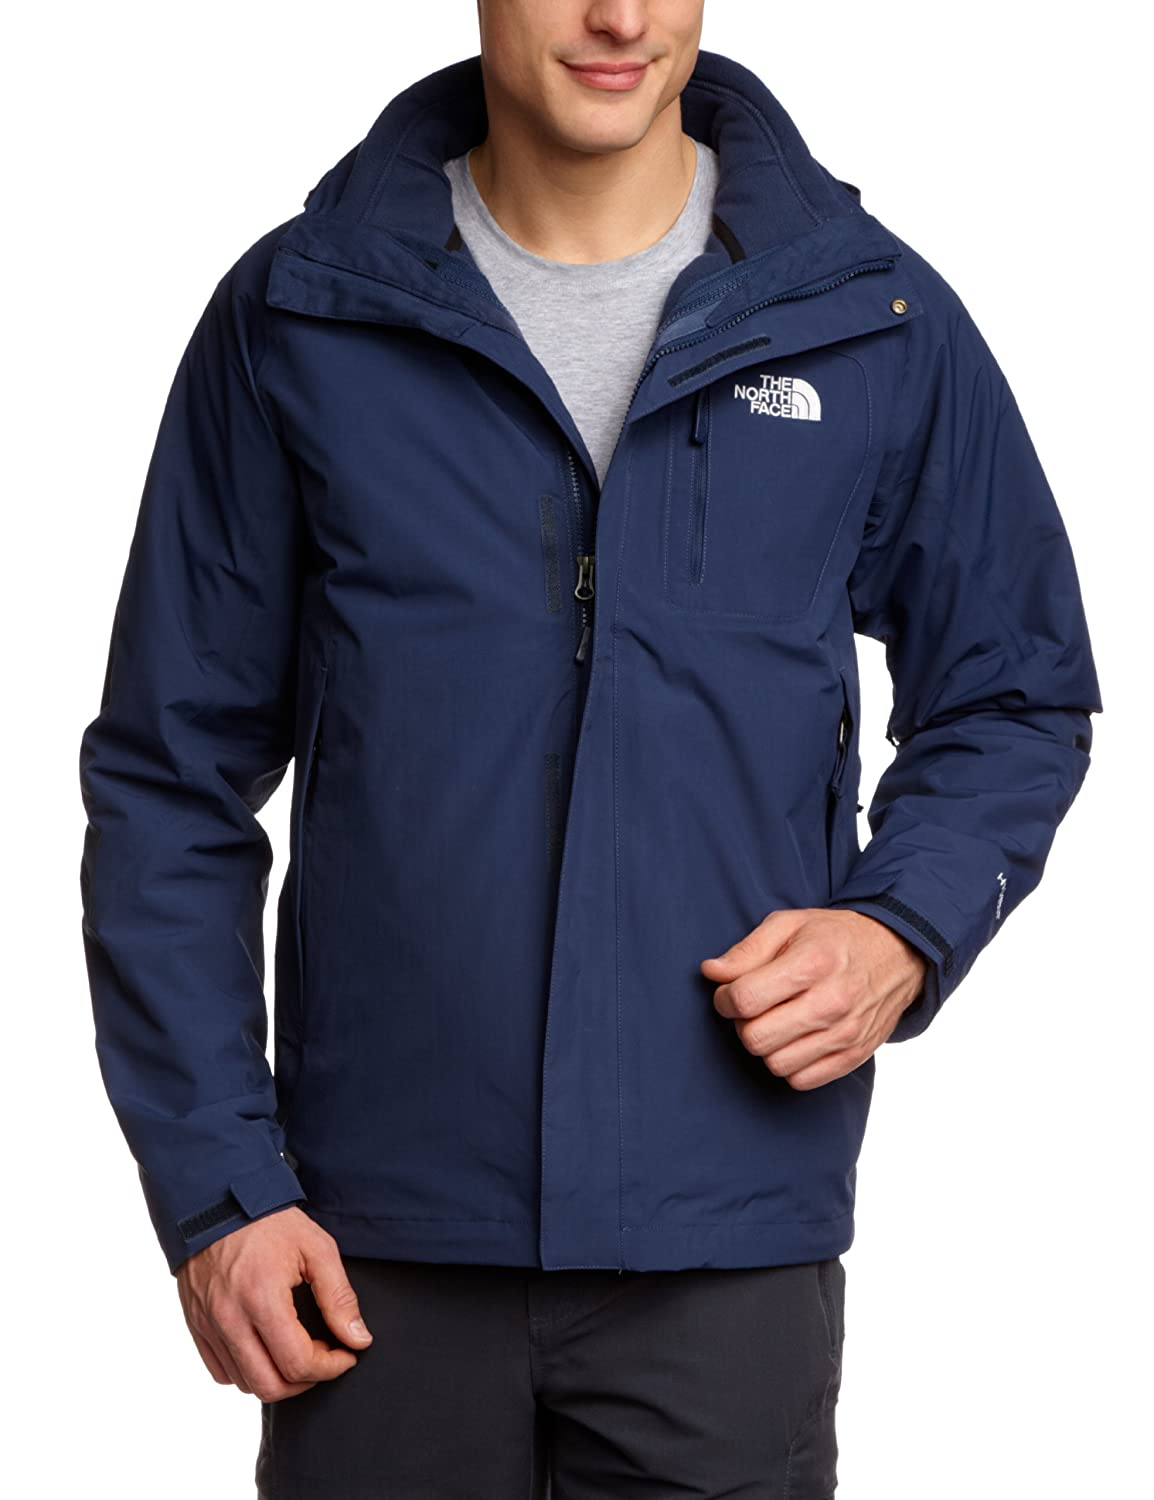 THE NORTH FACE Herren Jacke Atlas Triclimate günstig kaufen